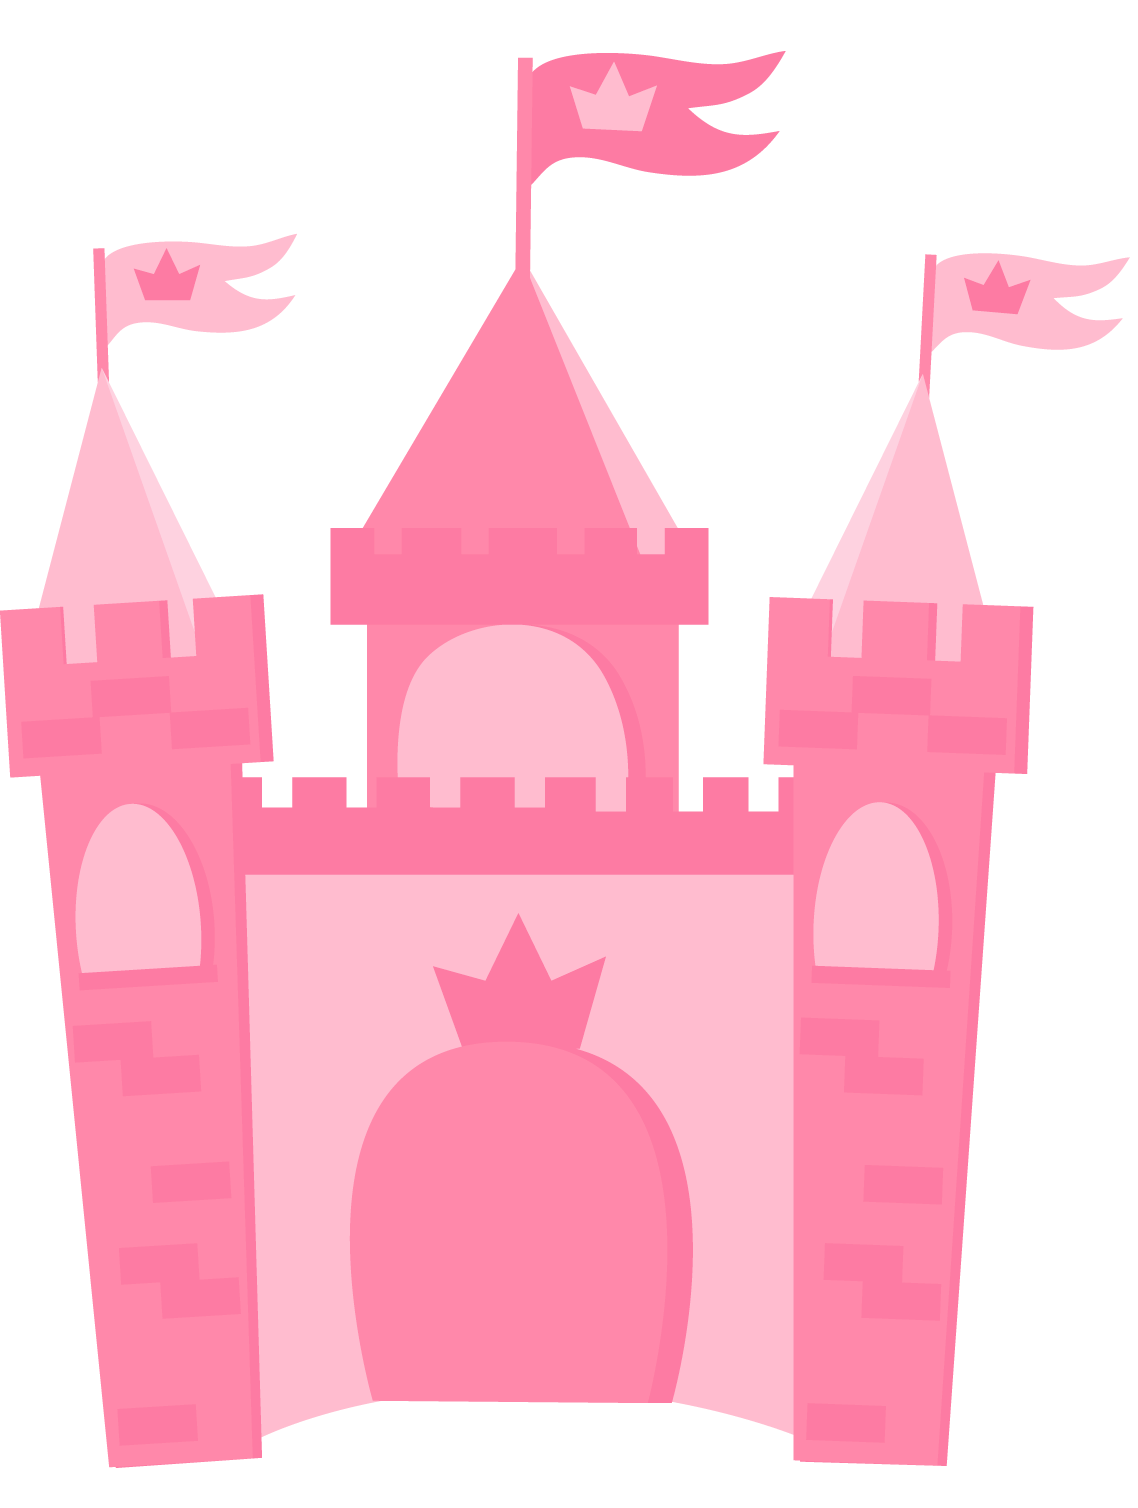 Castle clipart cute.